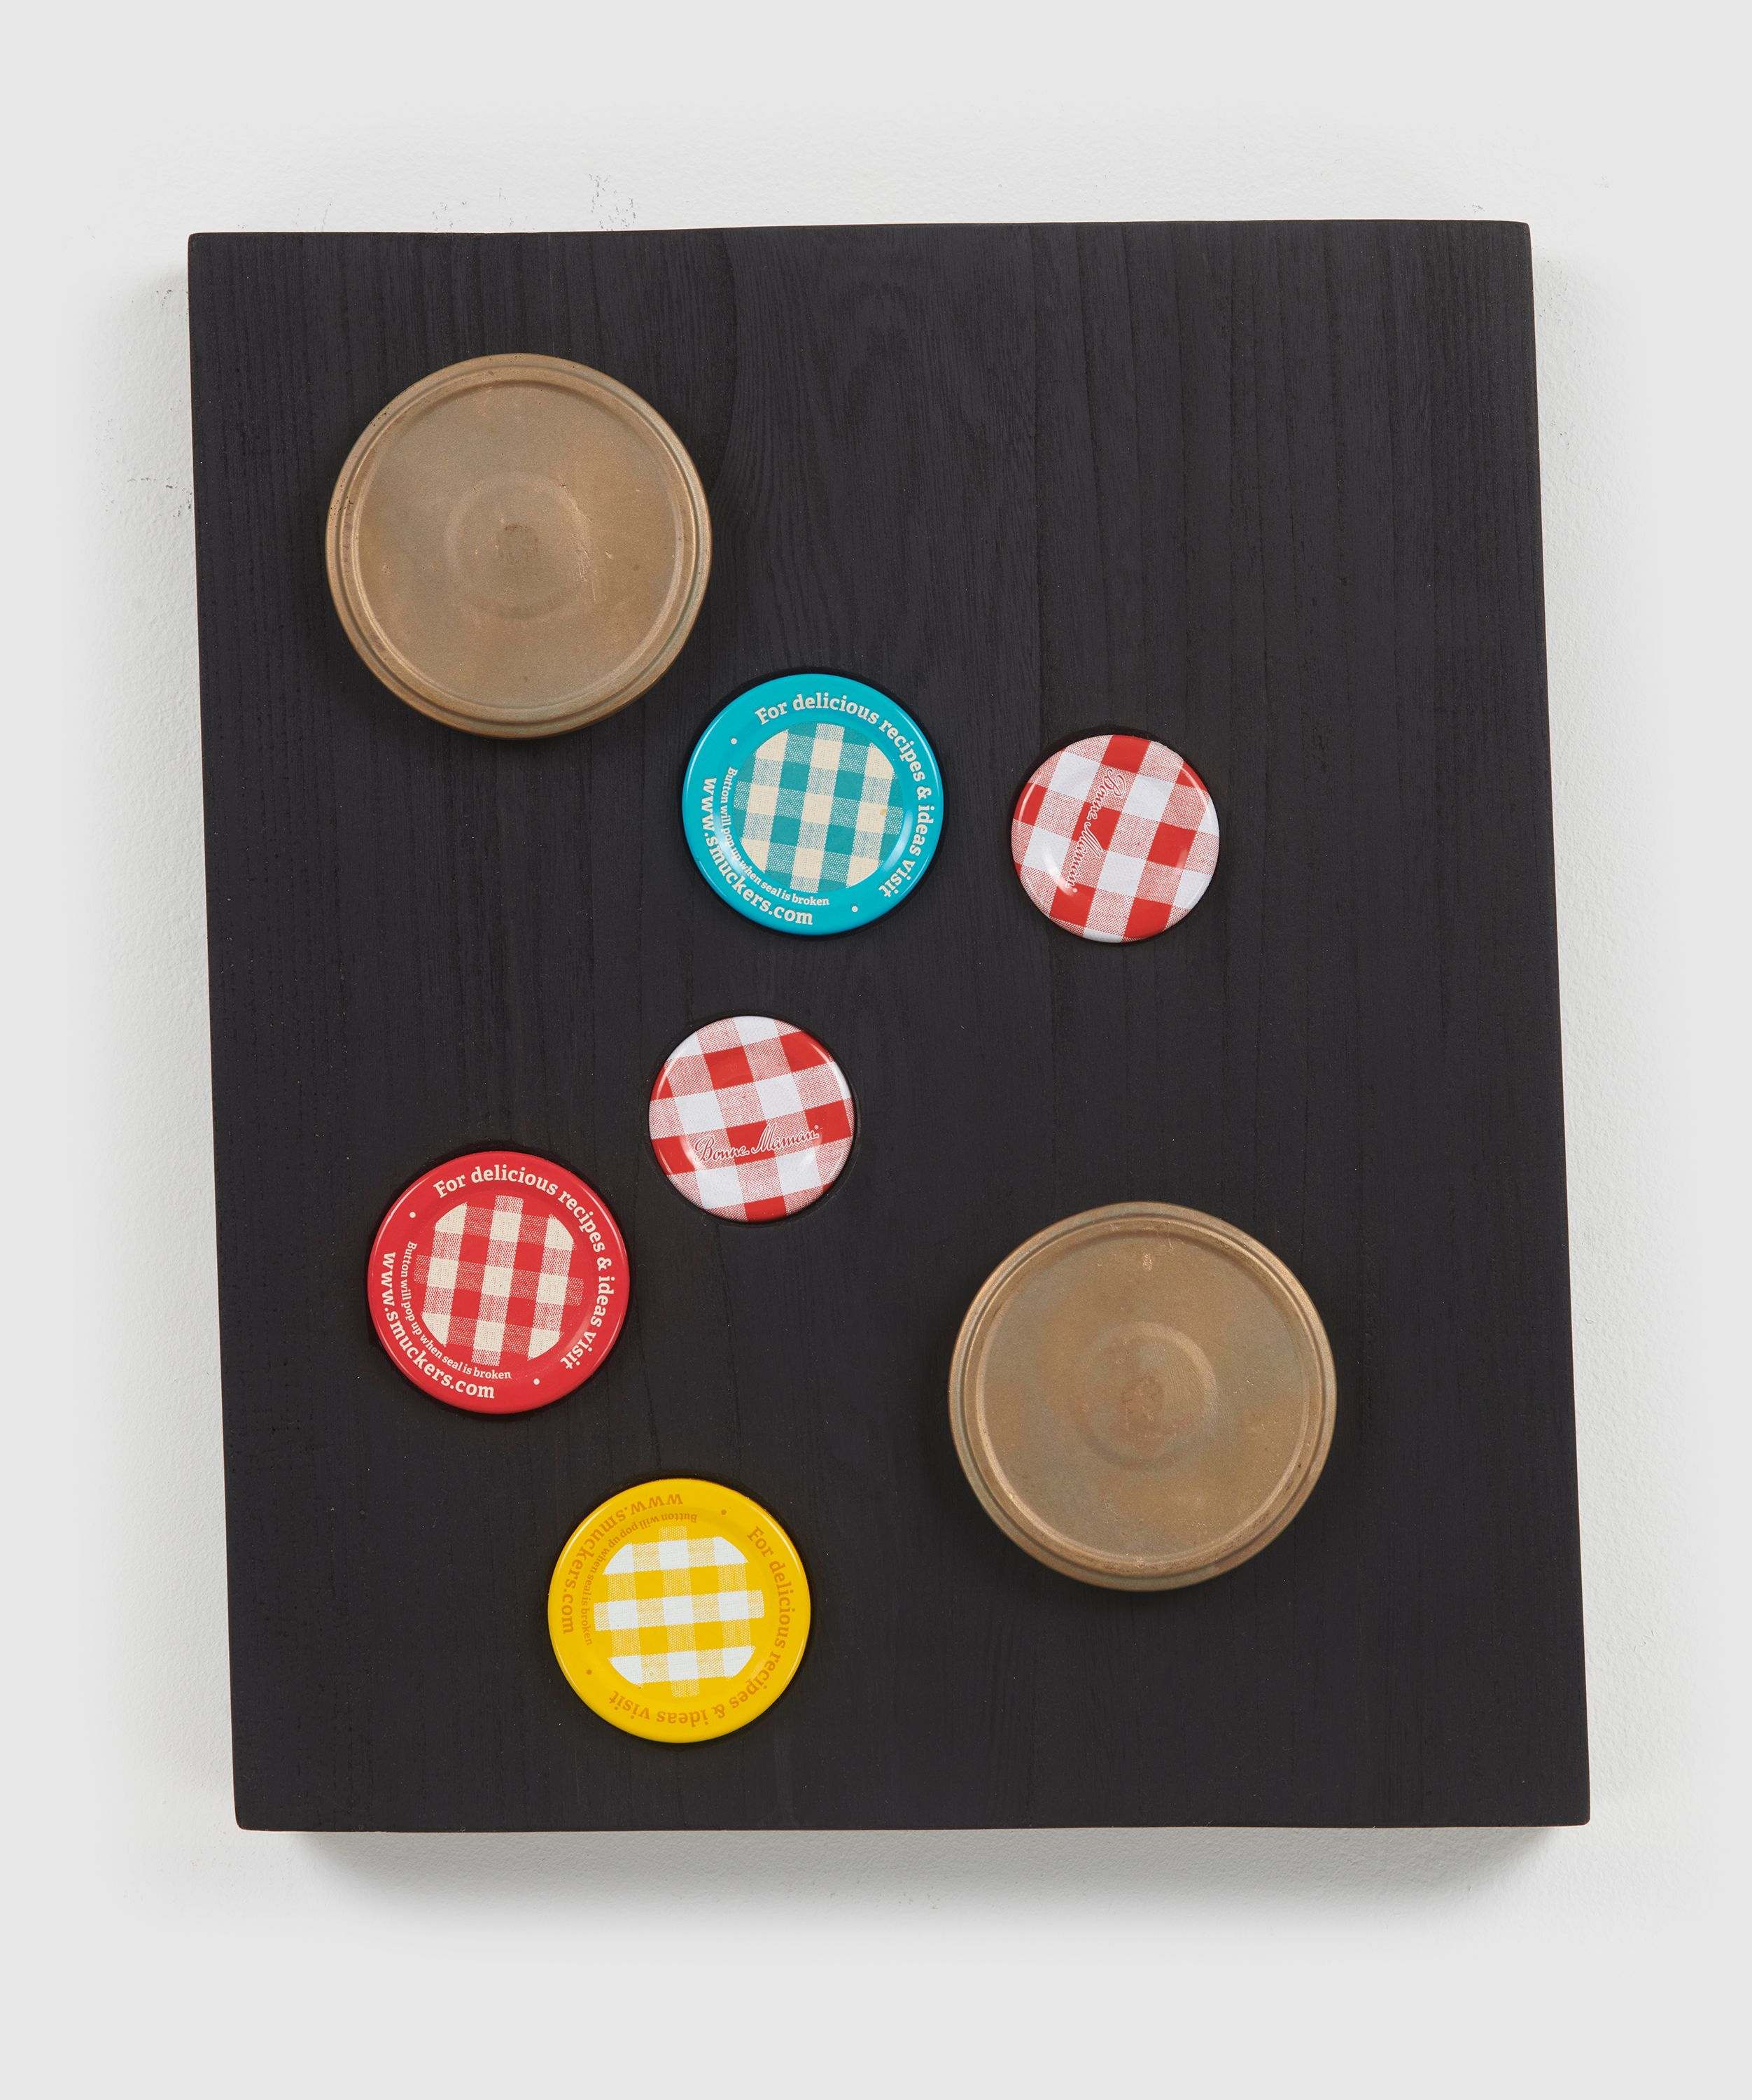 Michelle Grabner, Untitled, 2021, from